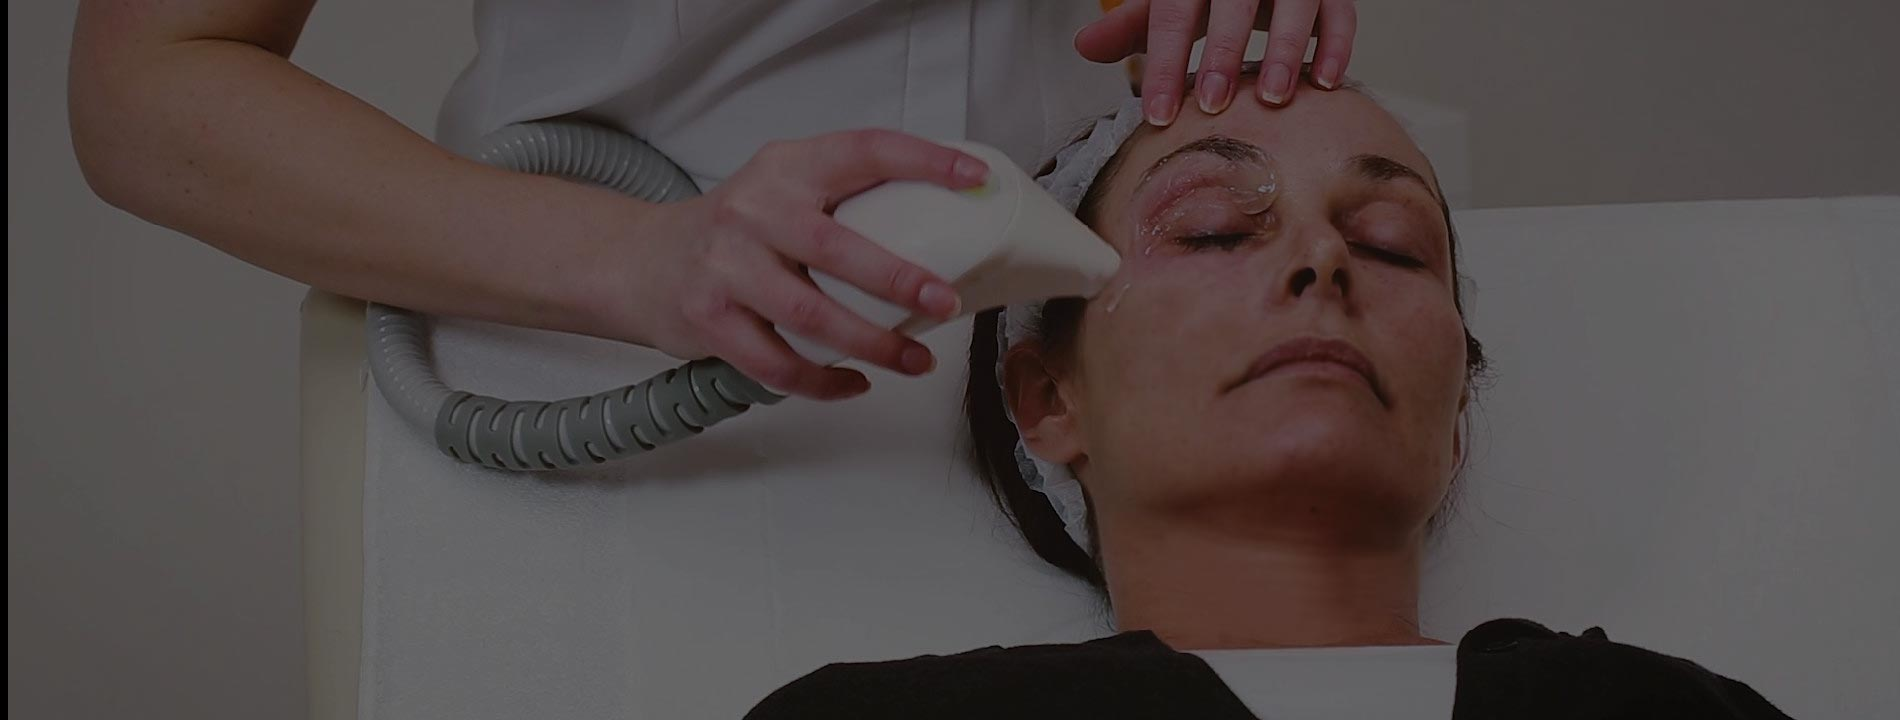 Intensify  Radiofrequency Skin Tightening & Resurfacing